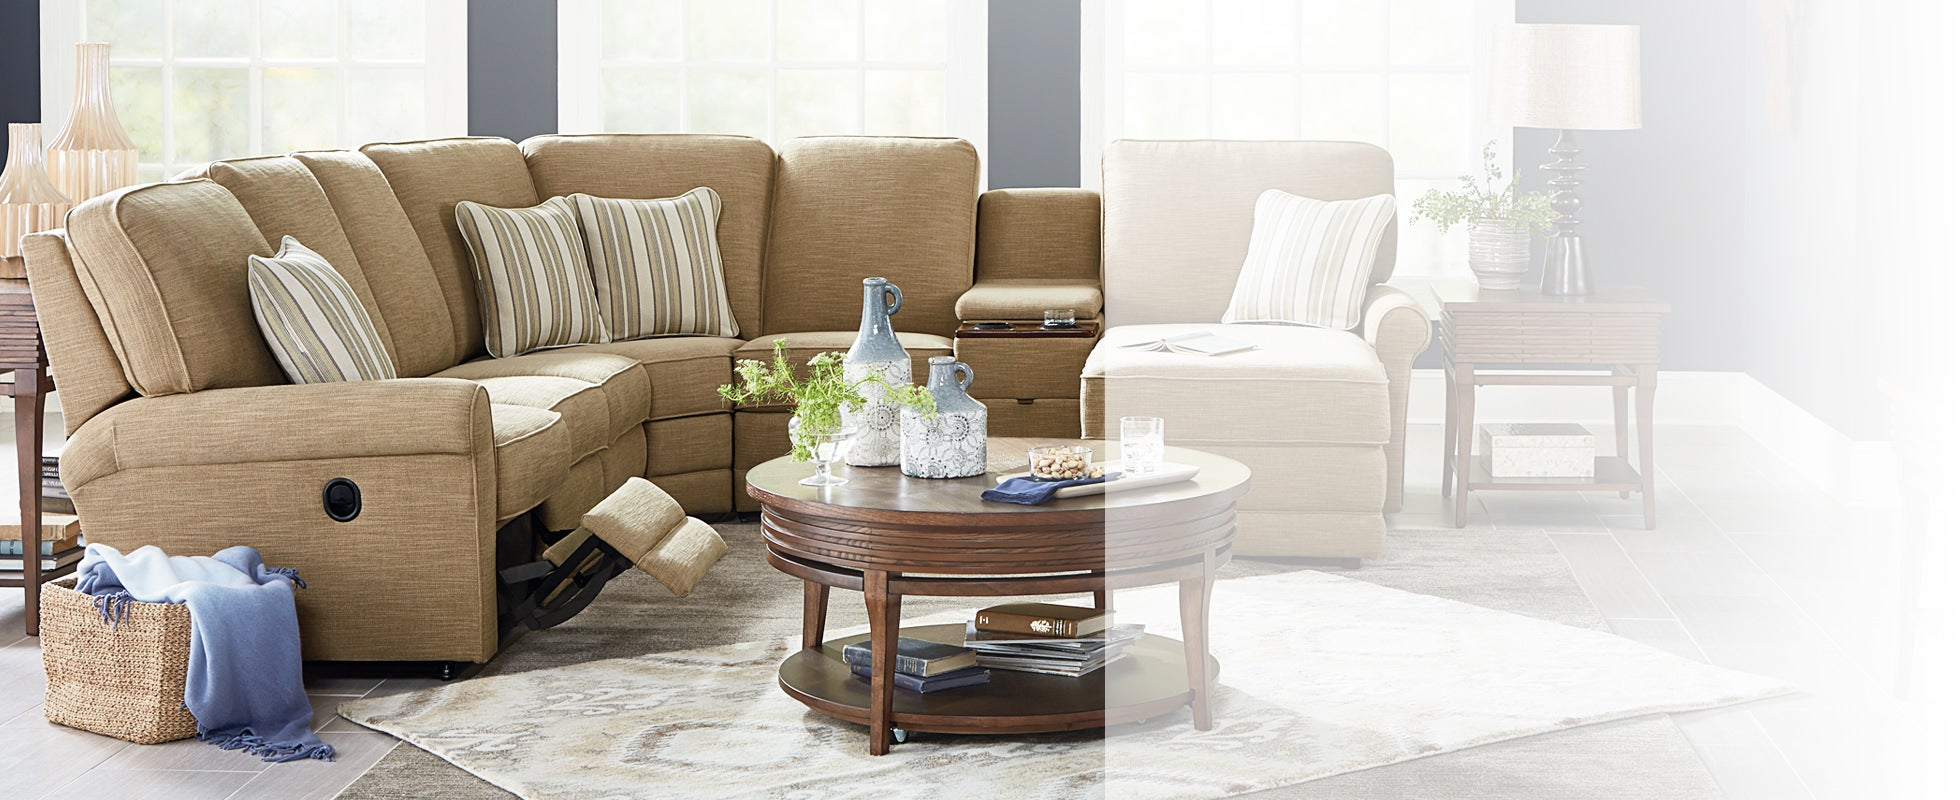 Leather Sectional Sofas & Couches | La-Z-Boy